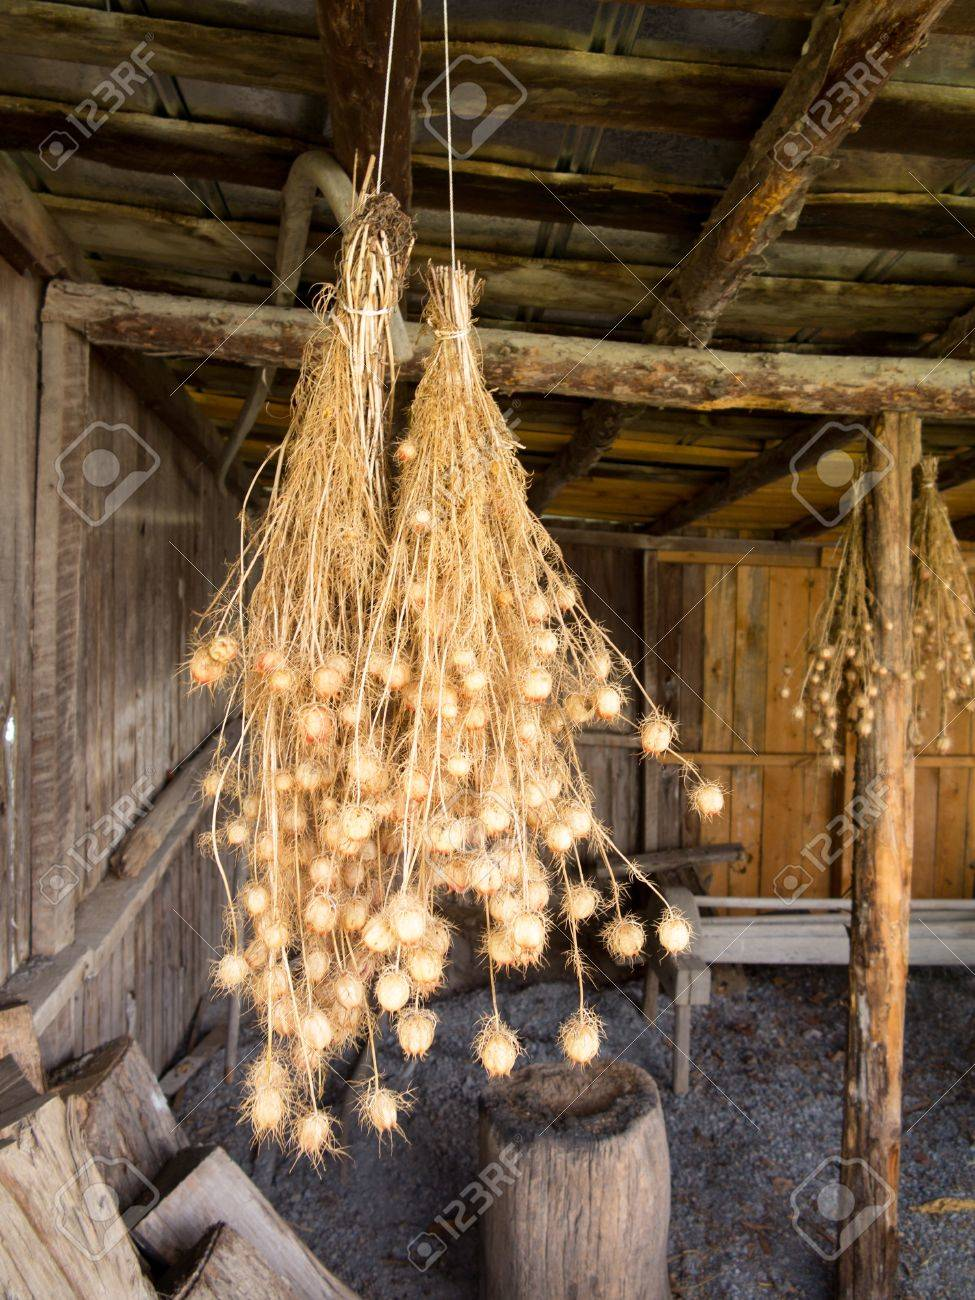 Bunches of drying Nigella plant herbs hanging from rafters of wooden barn Stock Photo - 14591180